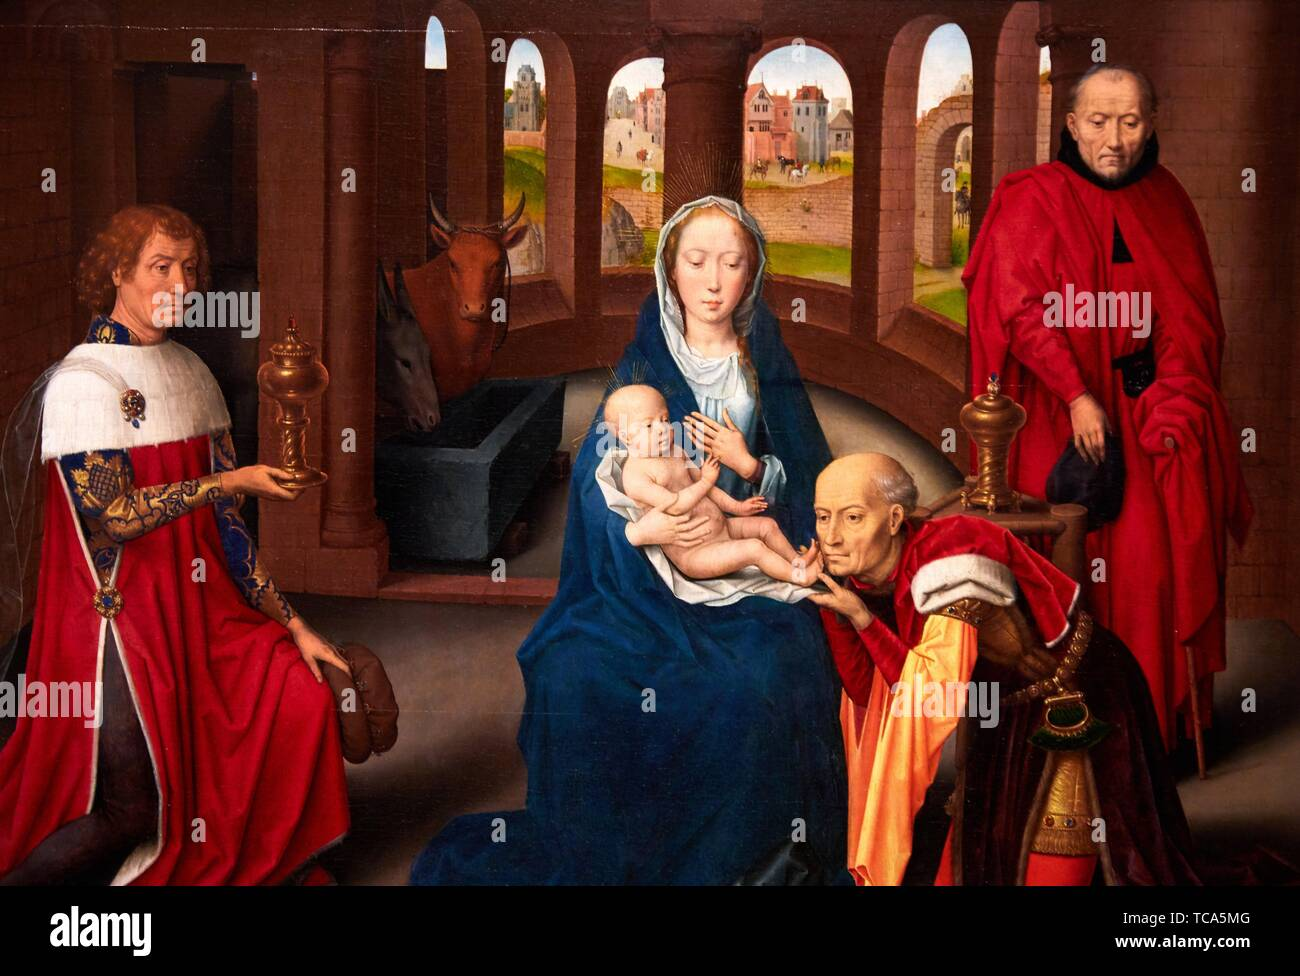 '''Triptych of the Adoration of the Magi'', 1470-1472, Hans Memling, Prado Museum, Madrid, Spain, Europe - Stock Image